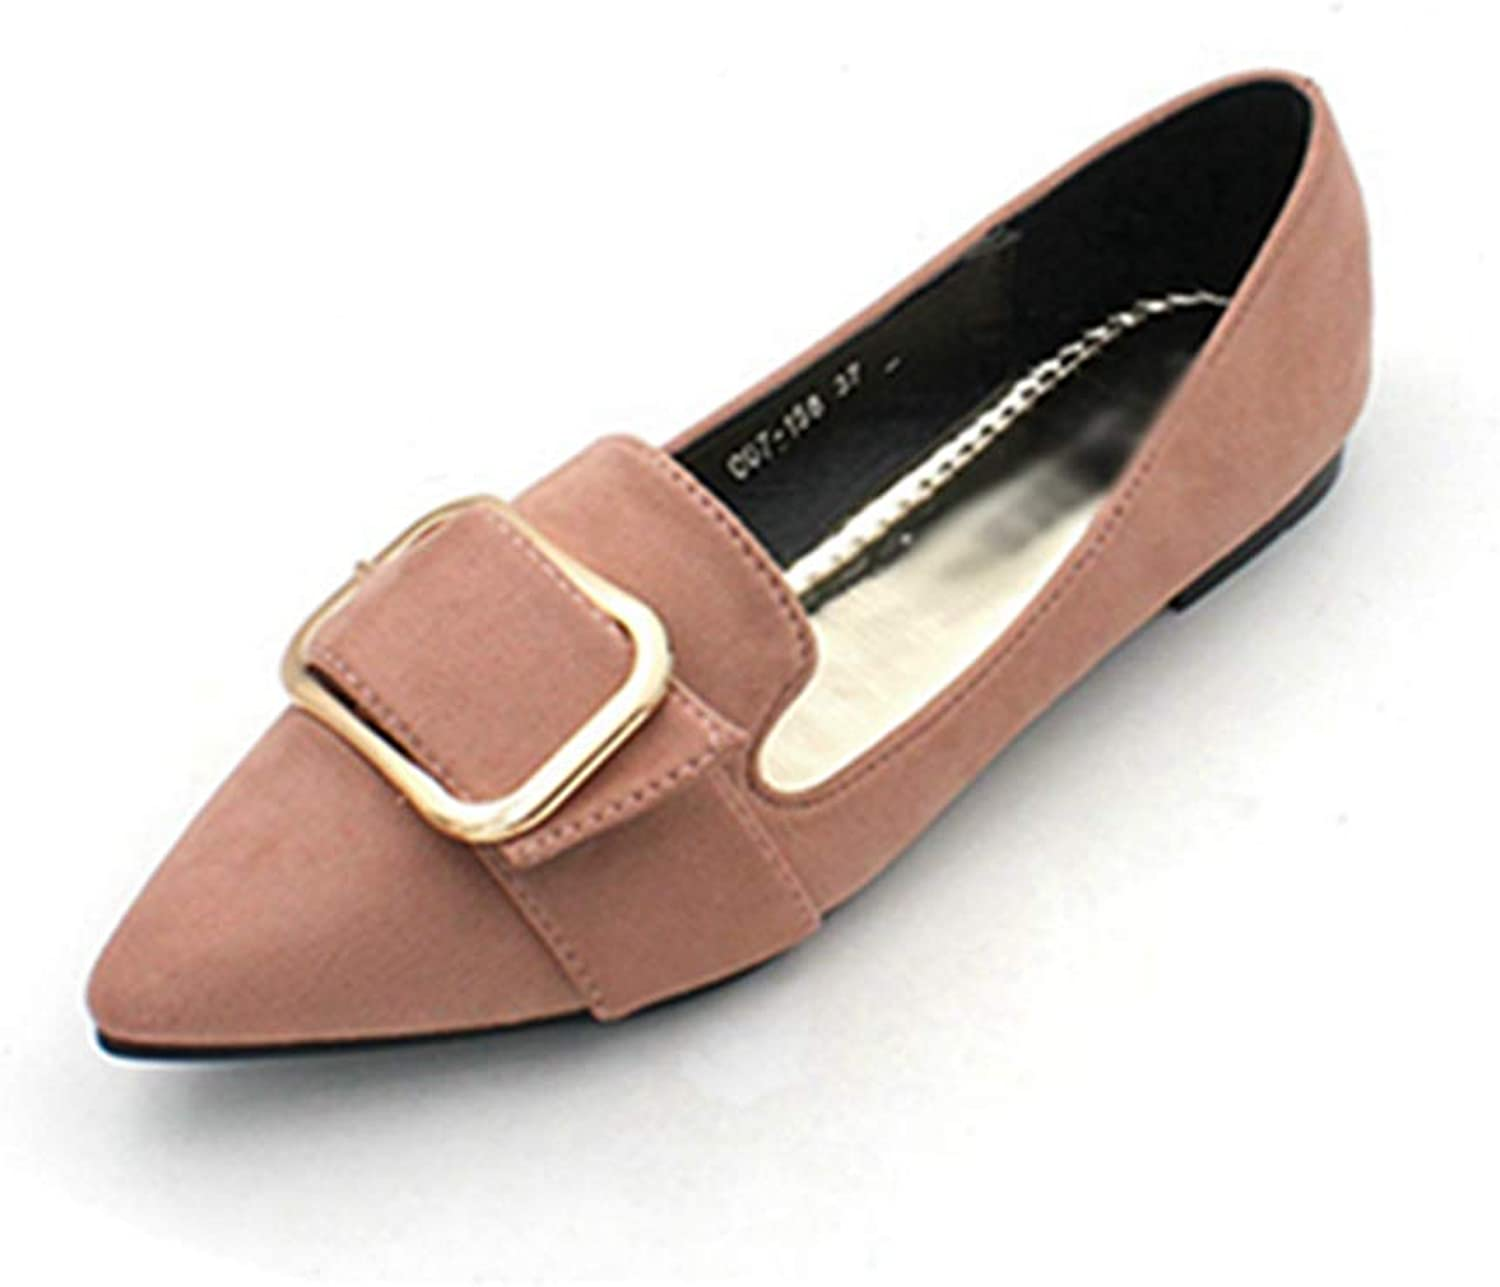 Women Flats shoes Pointed Toe Ballet Suede Lady Slip-On Comfort Dress Boat shoes